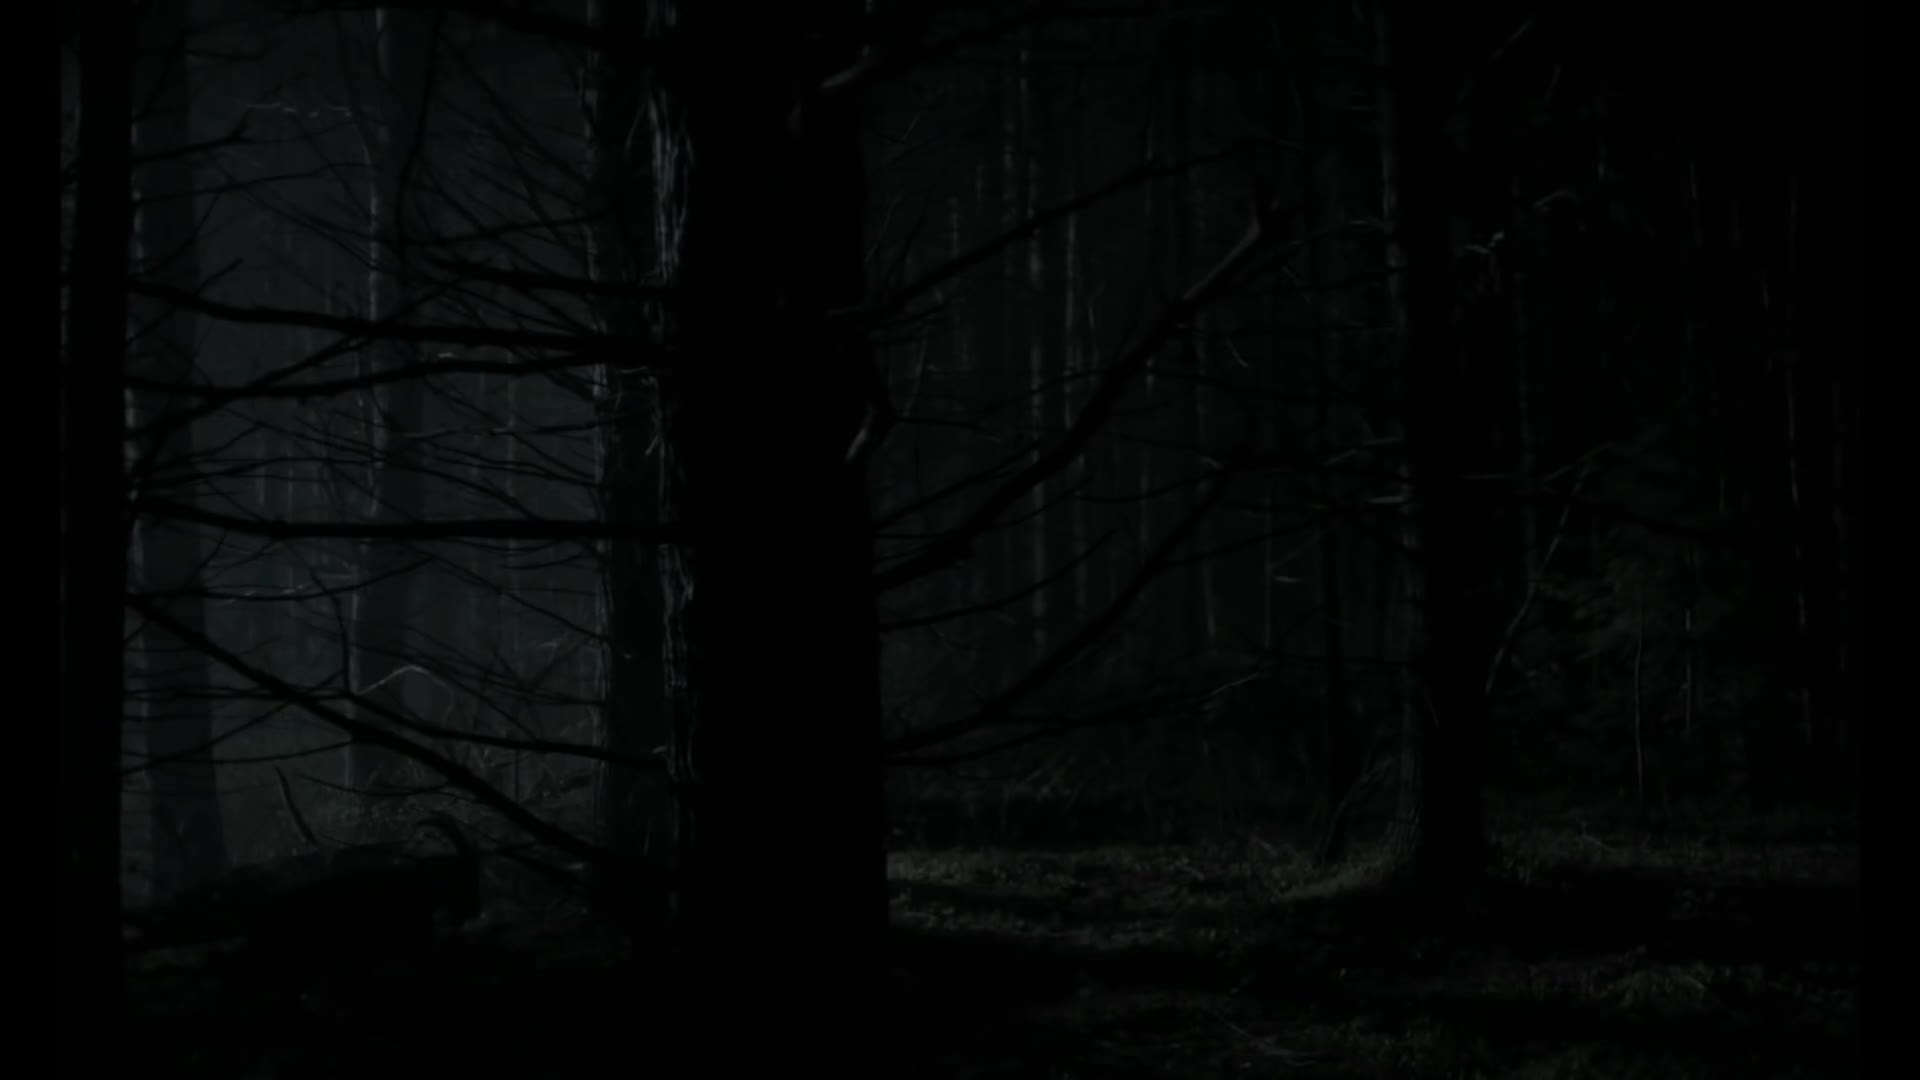 CineShots, the witch, The Witch GIFs